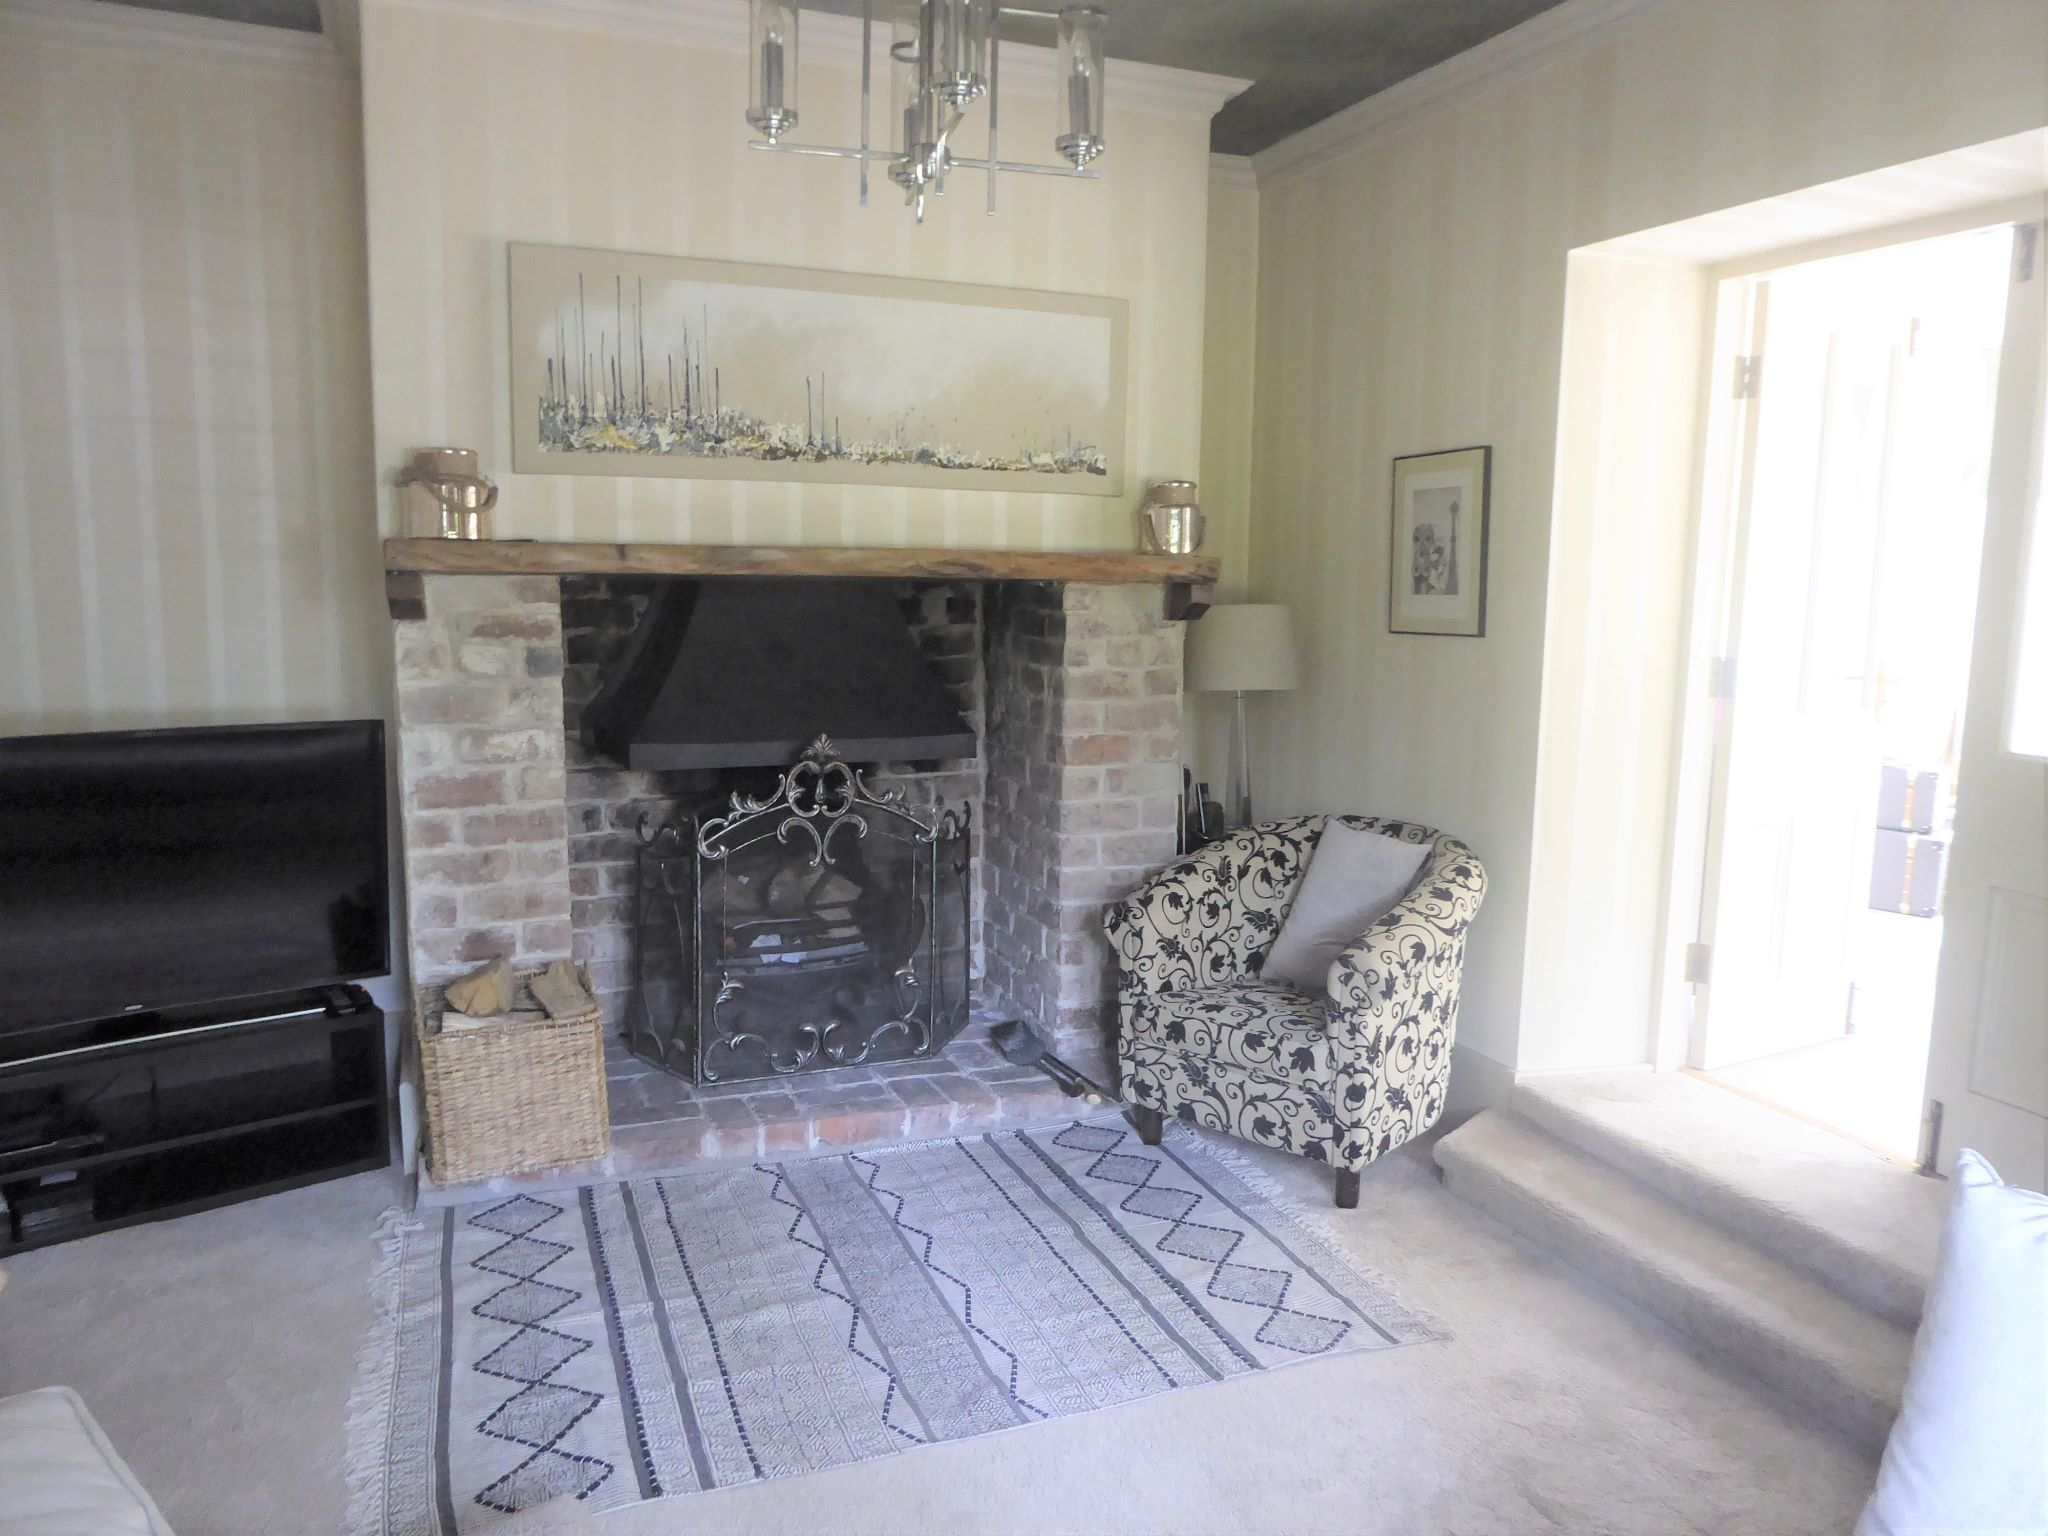 2 bedroom cottage house SSTC in Abergele - Photograph 6